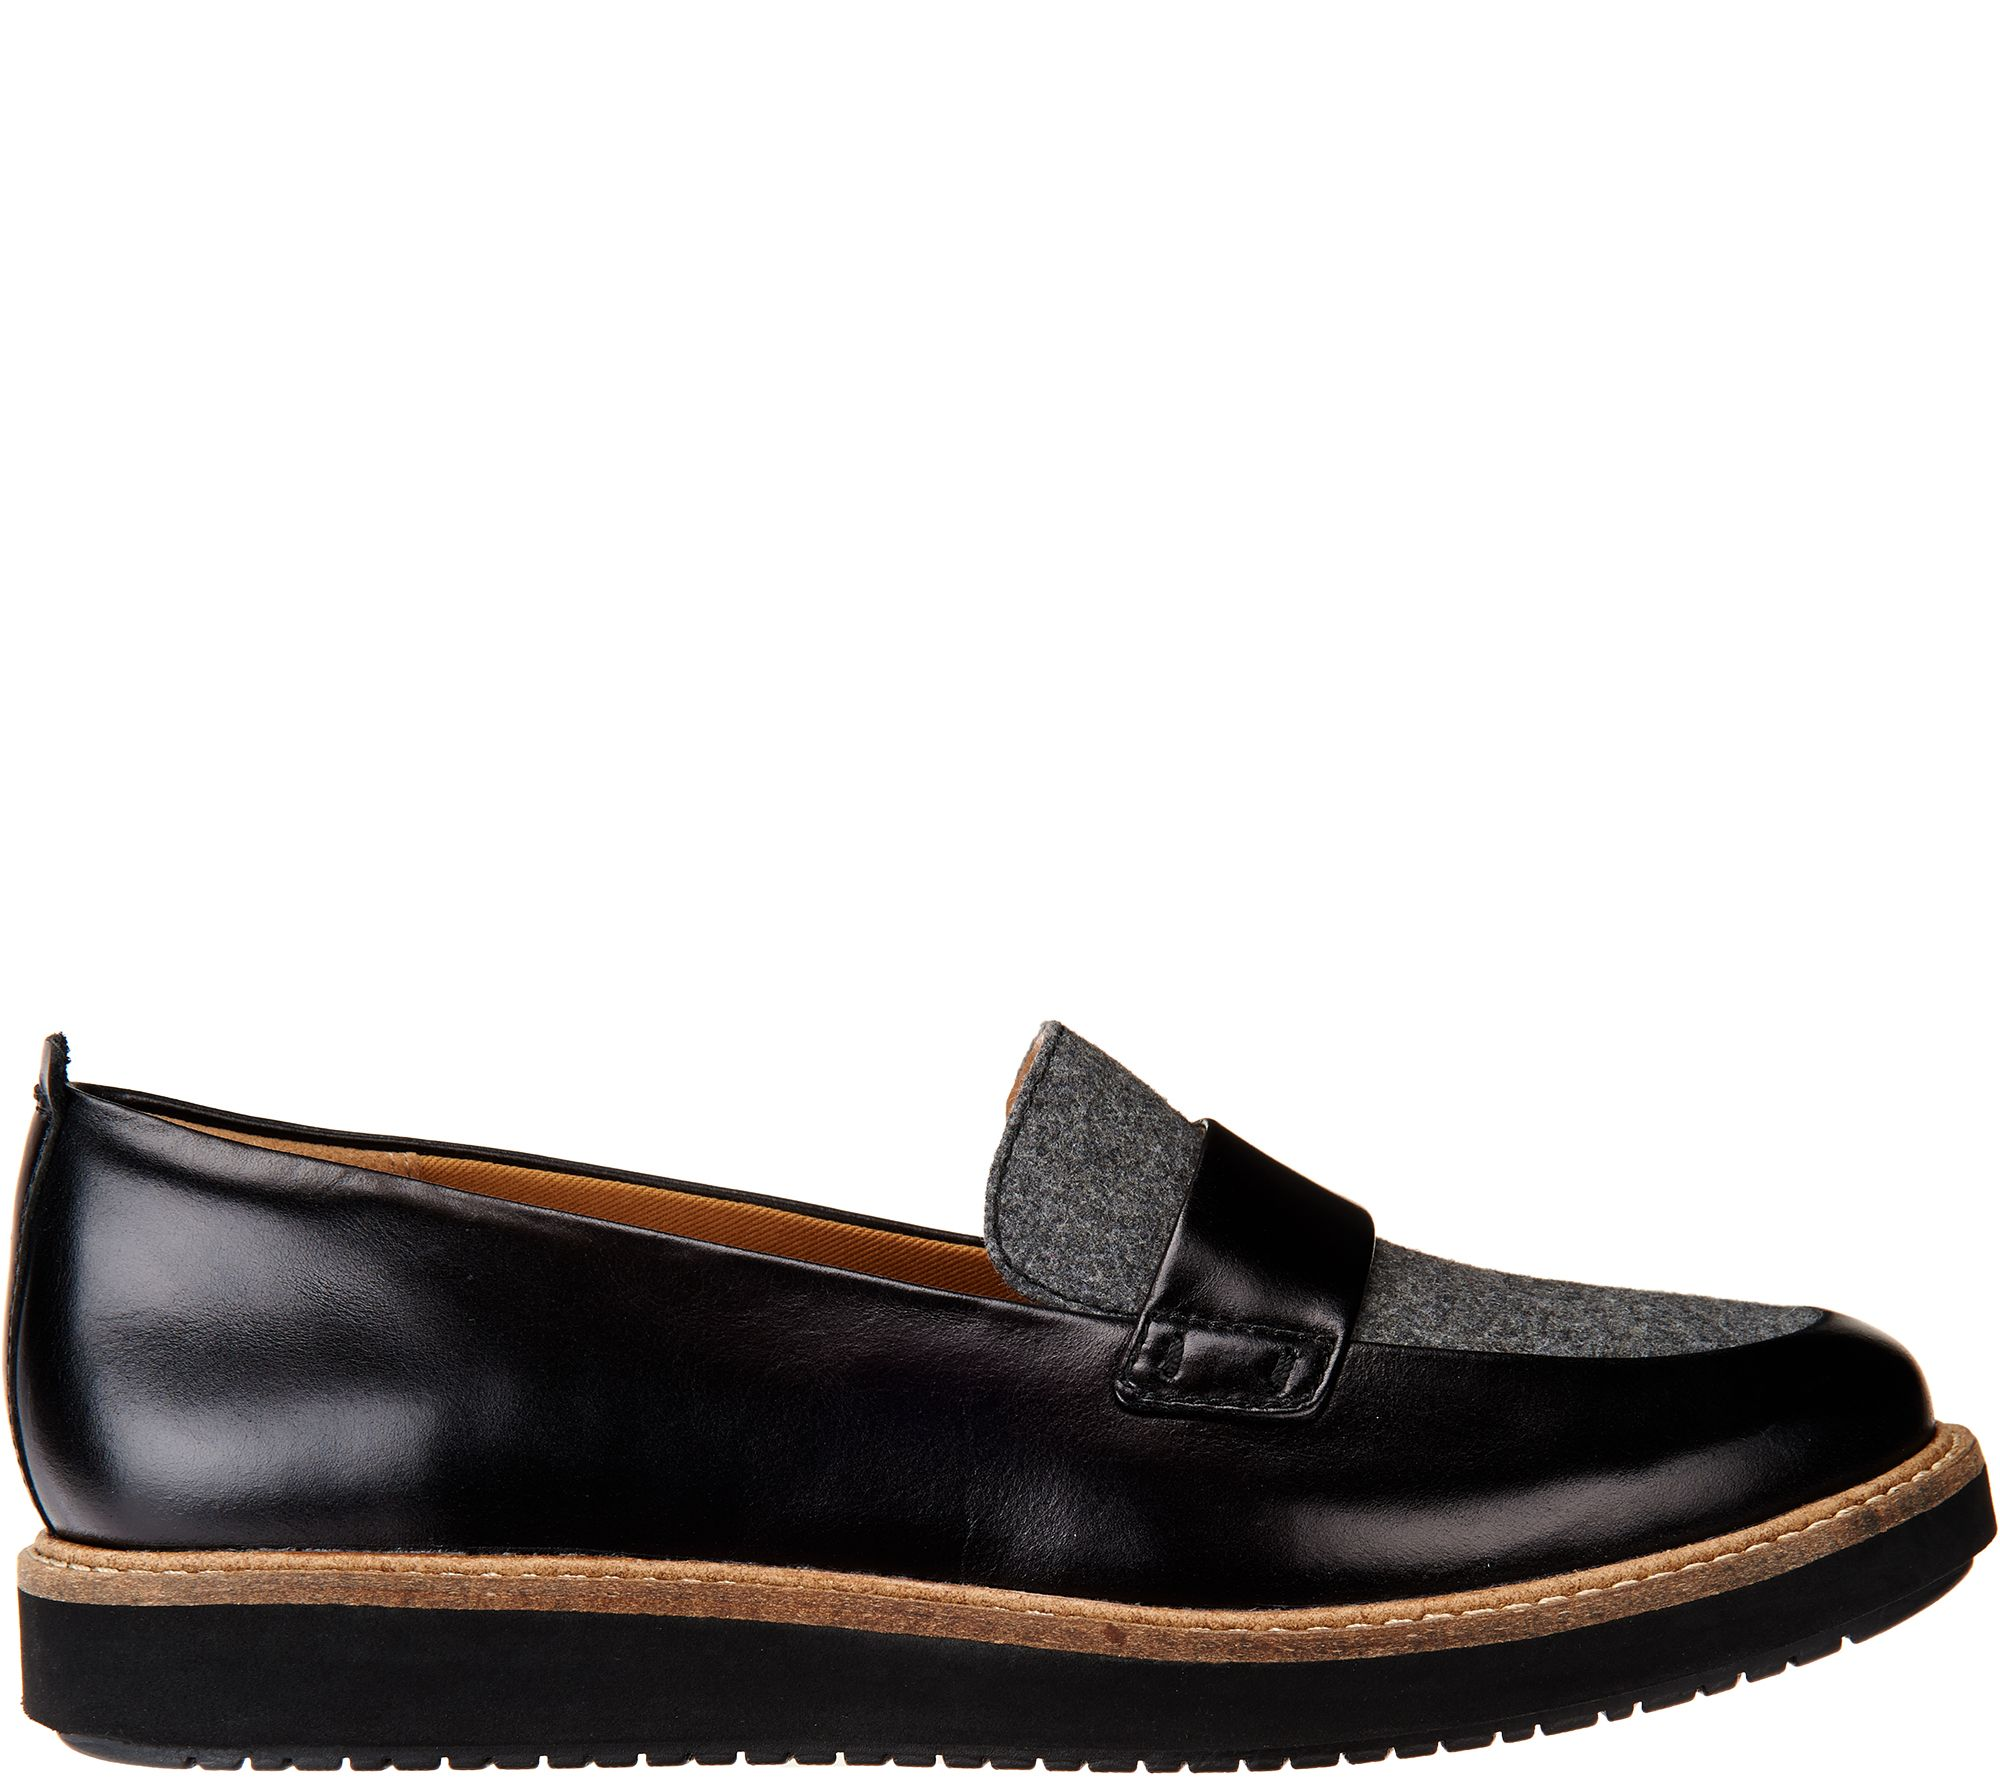 47fb7fe594d Clarks Artisan Leather Loafers - Glick Avalee - Page 1 — QVC.com